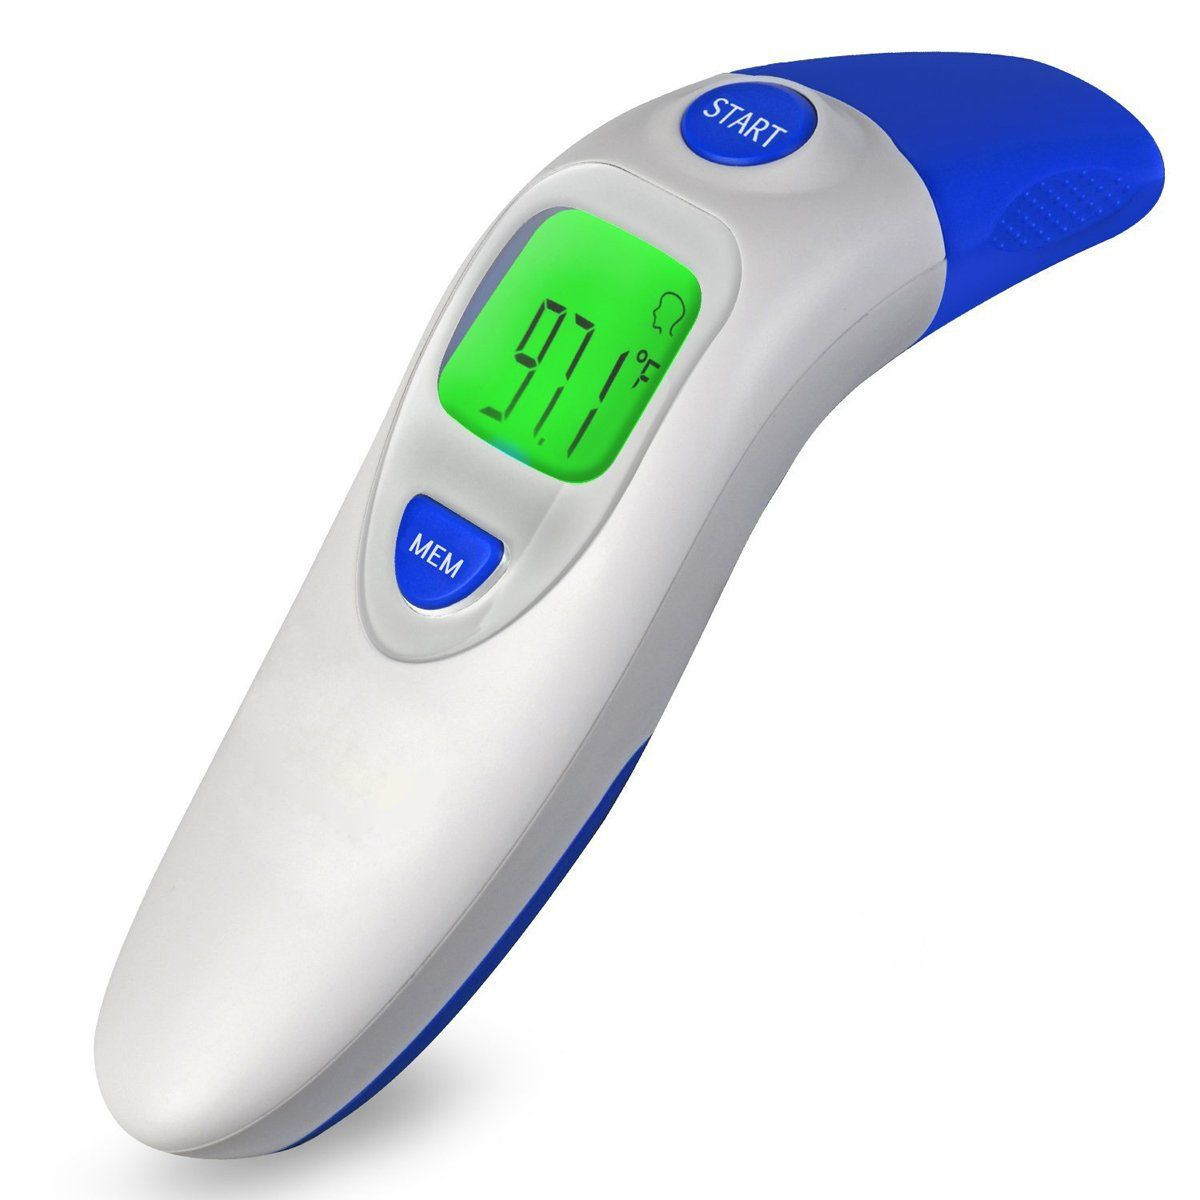 Digital Ear Forehead Thermometer Accurate Baby /& Adult Thermometer